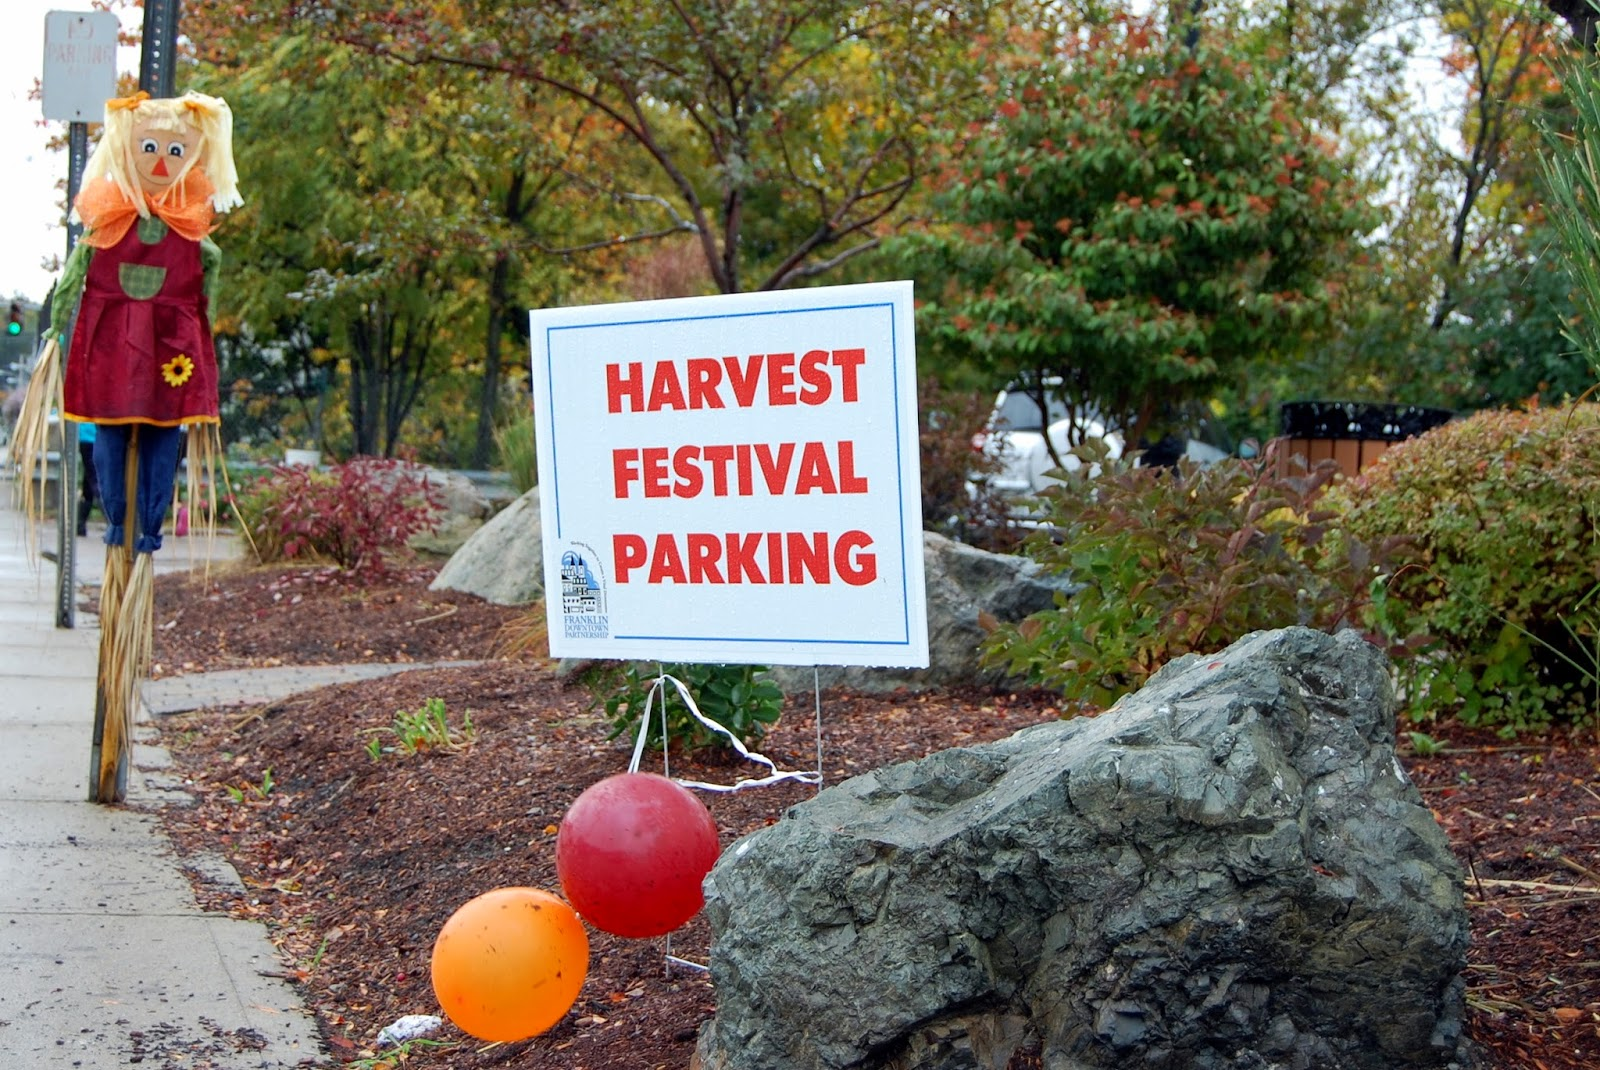 Harvest Festival Parking Sign 2013